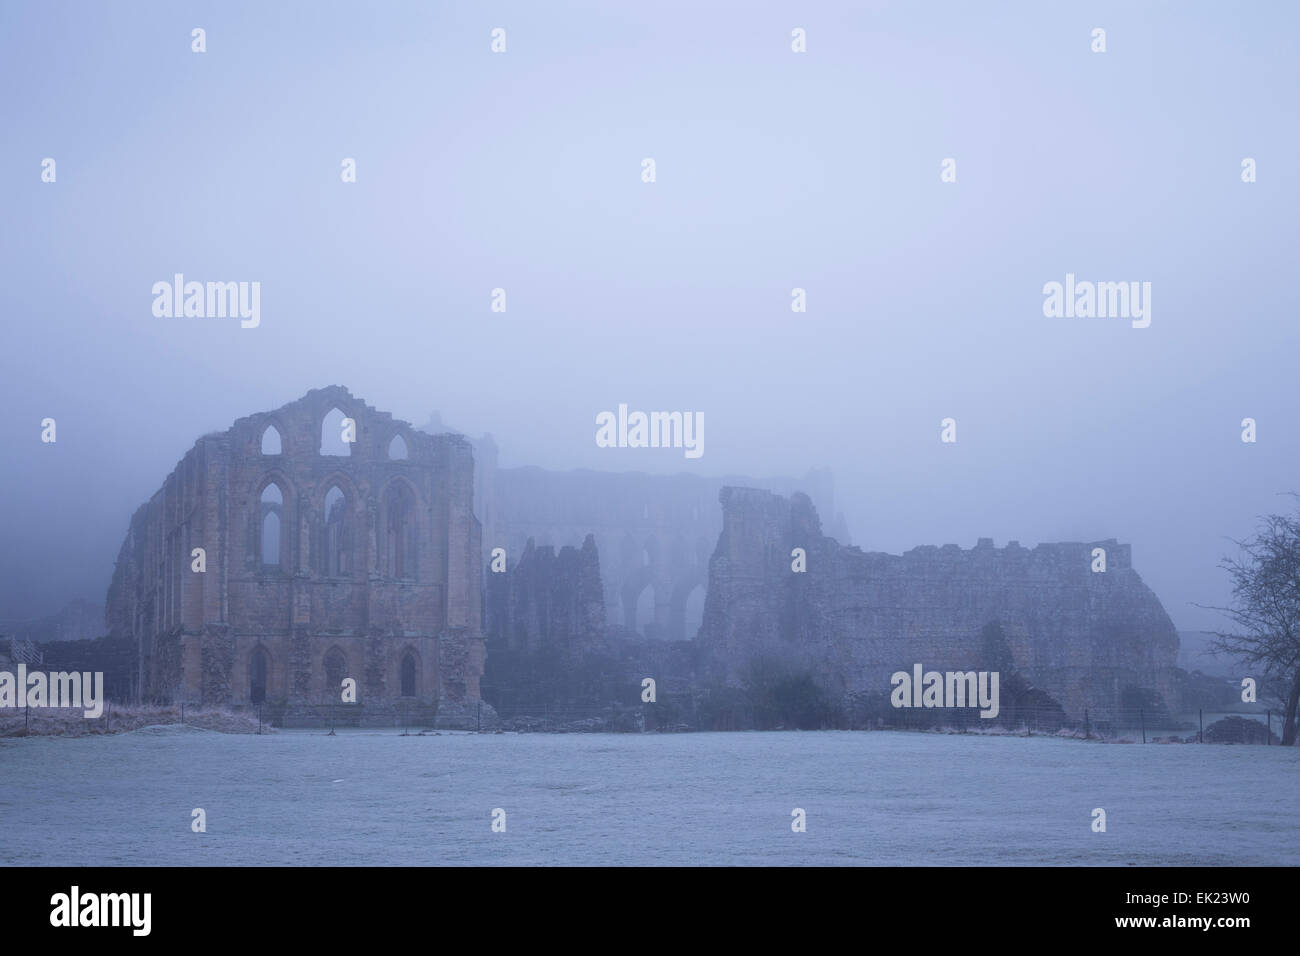 Rievaulx Abbey in the nist, North Yorkshire. - Stock Image